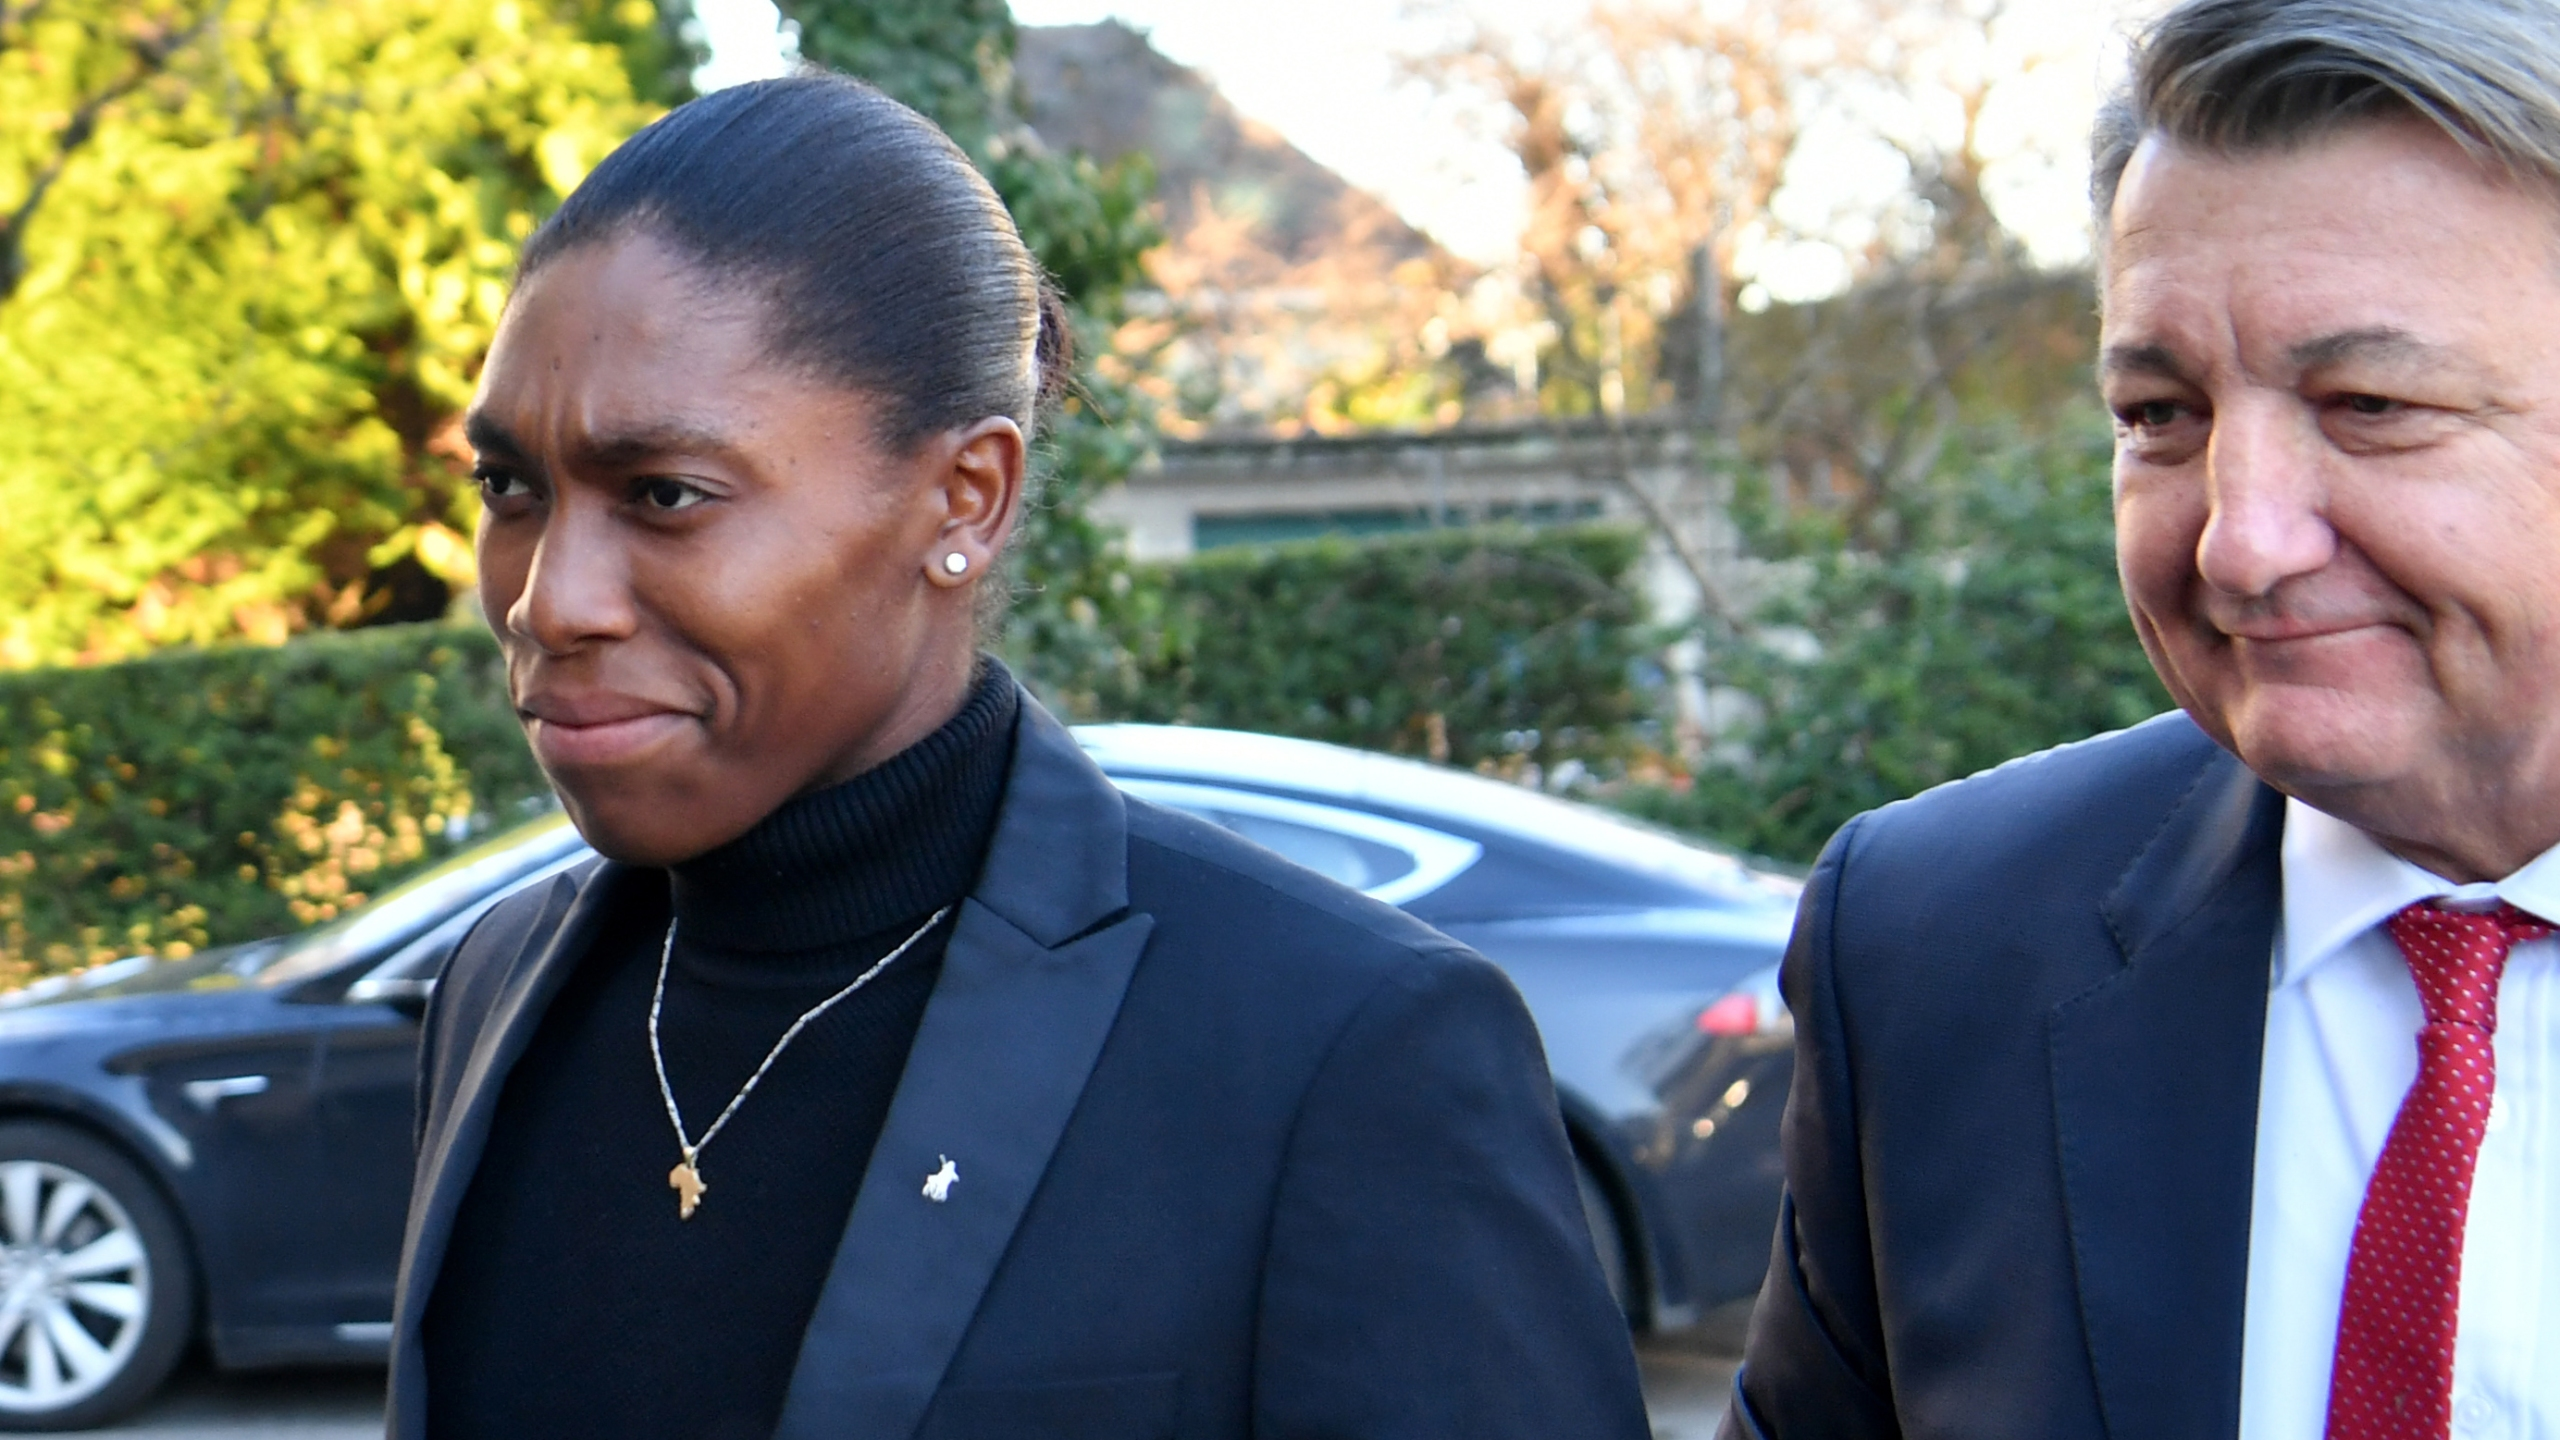 South African 800 meters Olympic champion Caster Semenya and her lawyer Gregory Nott arrive for a landmark hearing at the Court of Arbitration for Sport (CAS) in Lausanne on February 18, 2019. (Credit: HAROLD CUNNINGHAM/AFP/Getty Images)